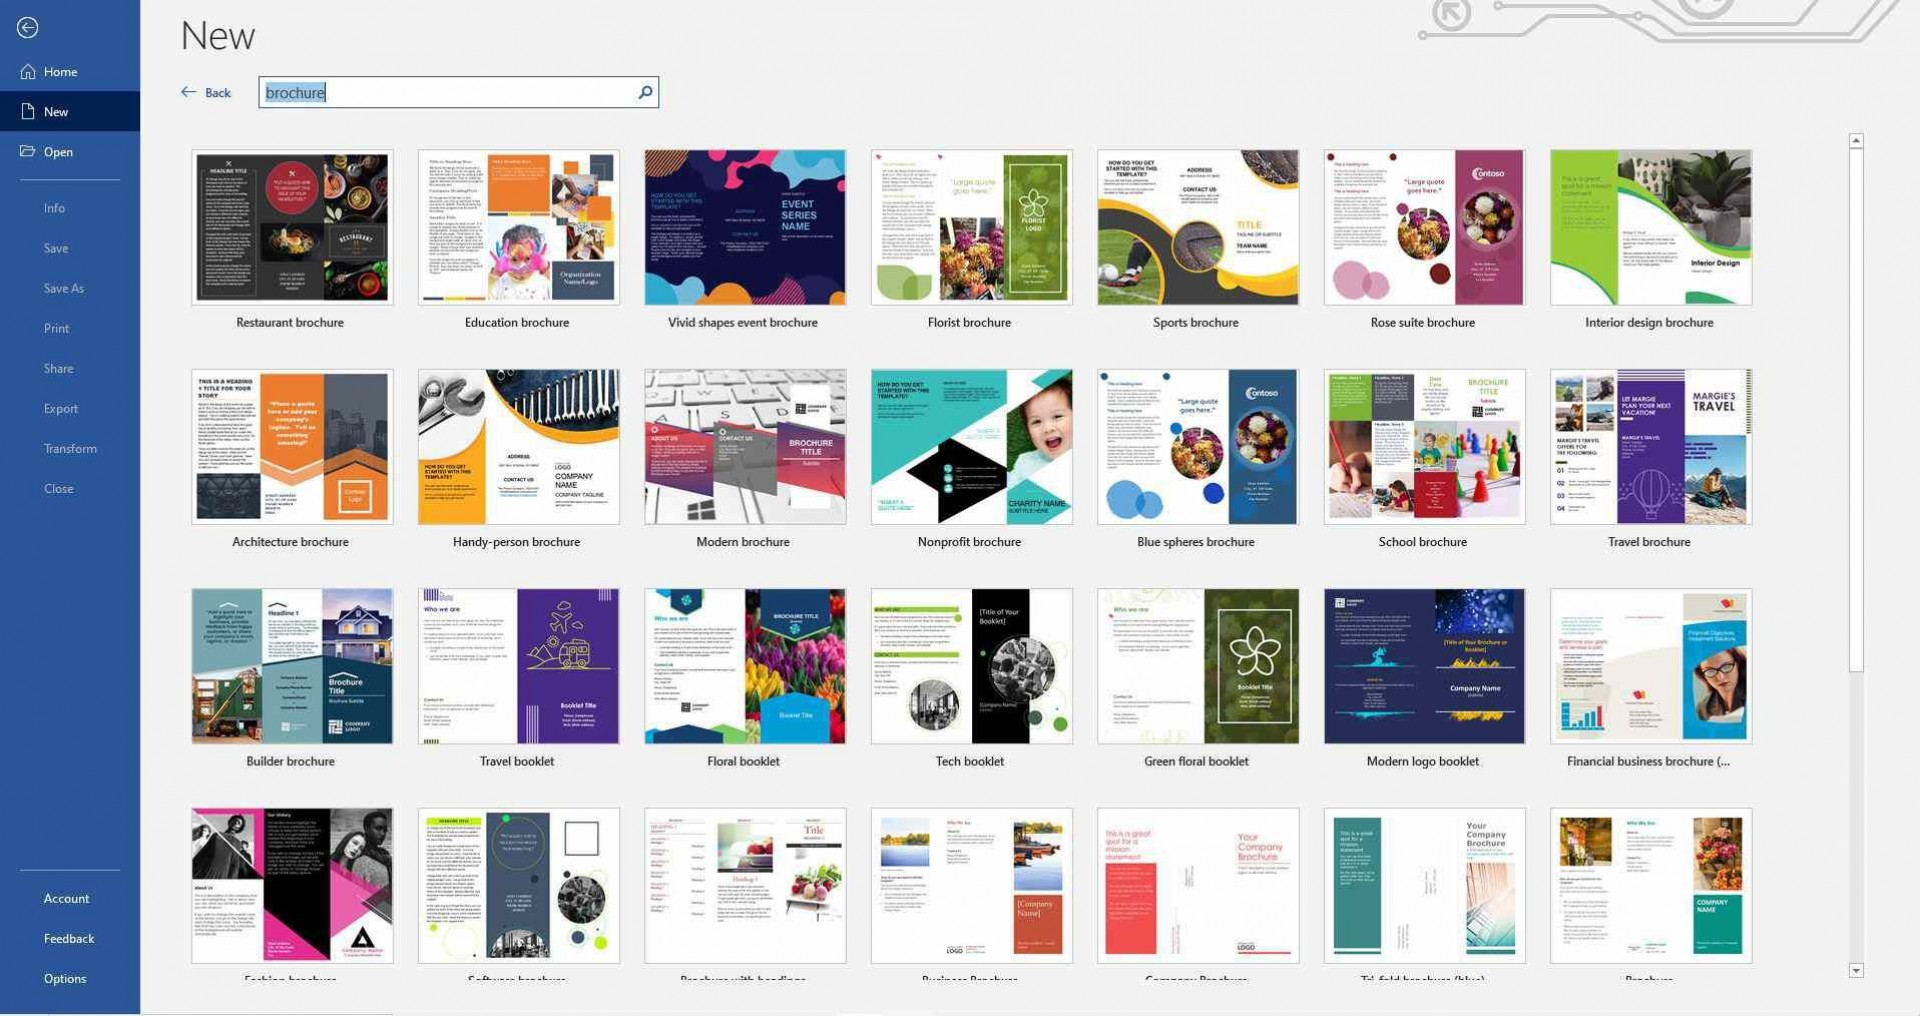 001 Singular M Word 2007 Brochure Template Example  Templates Microsoft Office Download For Free1920